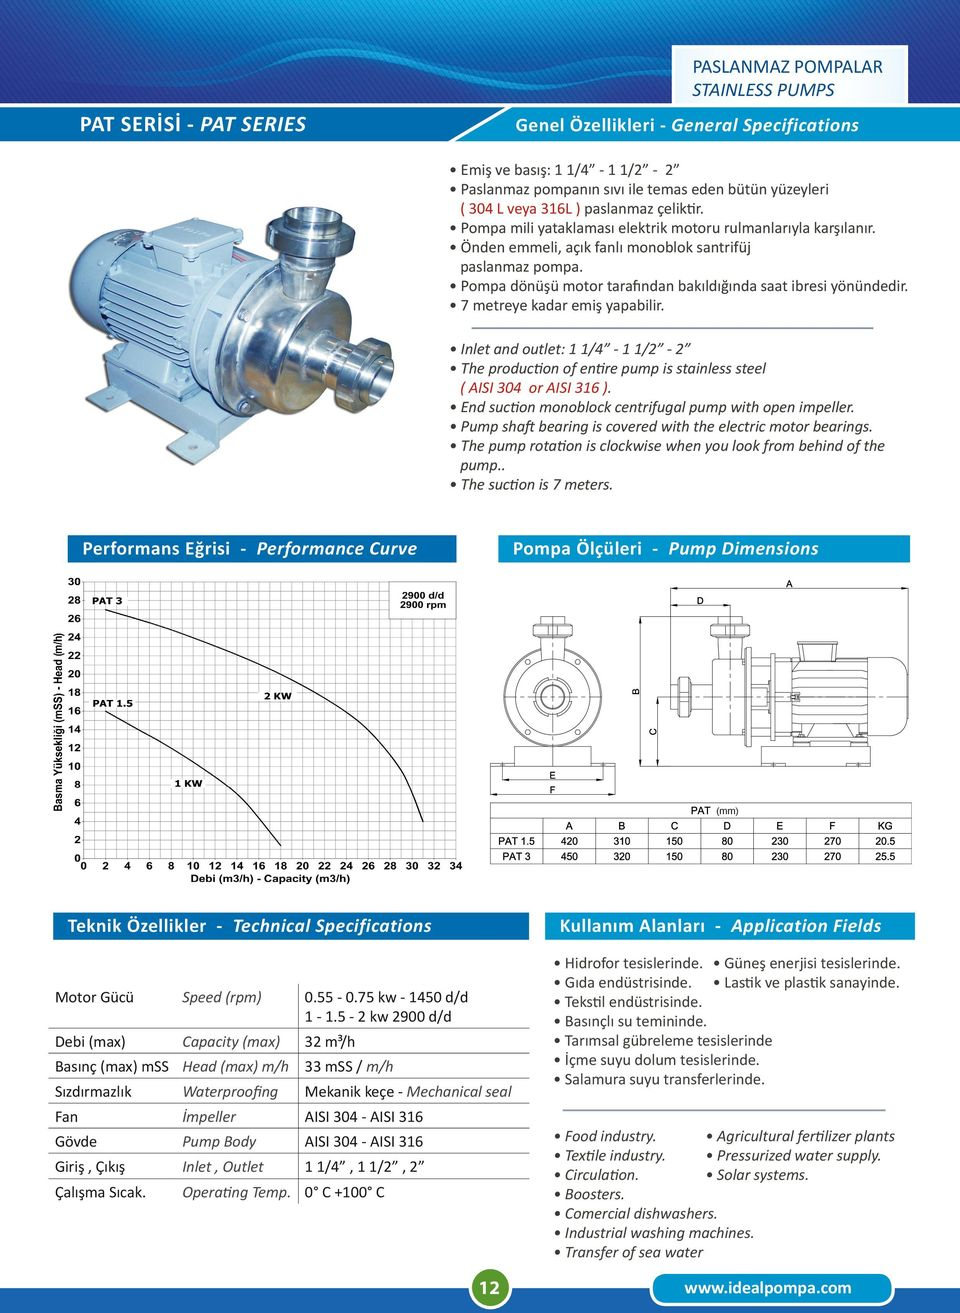 End suction monoblock centrifugal pump with open impeller. Pump shaft bearing is covered with the electric motor bearings. The pump rotation is clockwise when you look from behind of the pump.